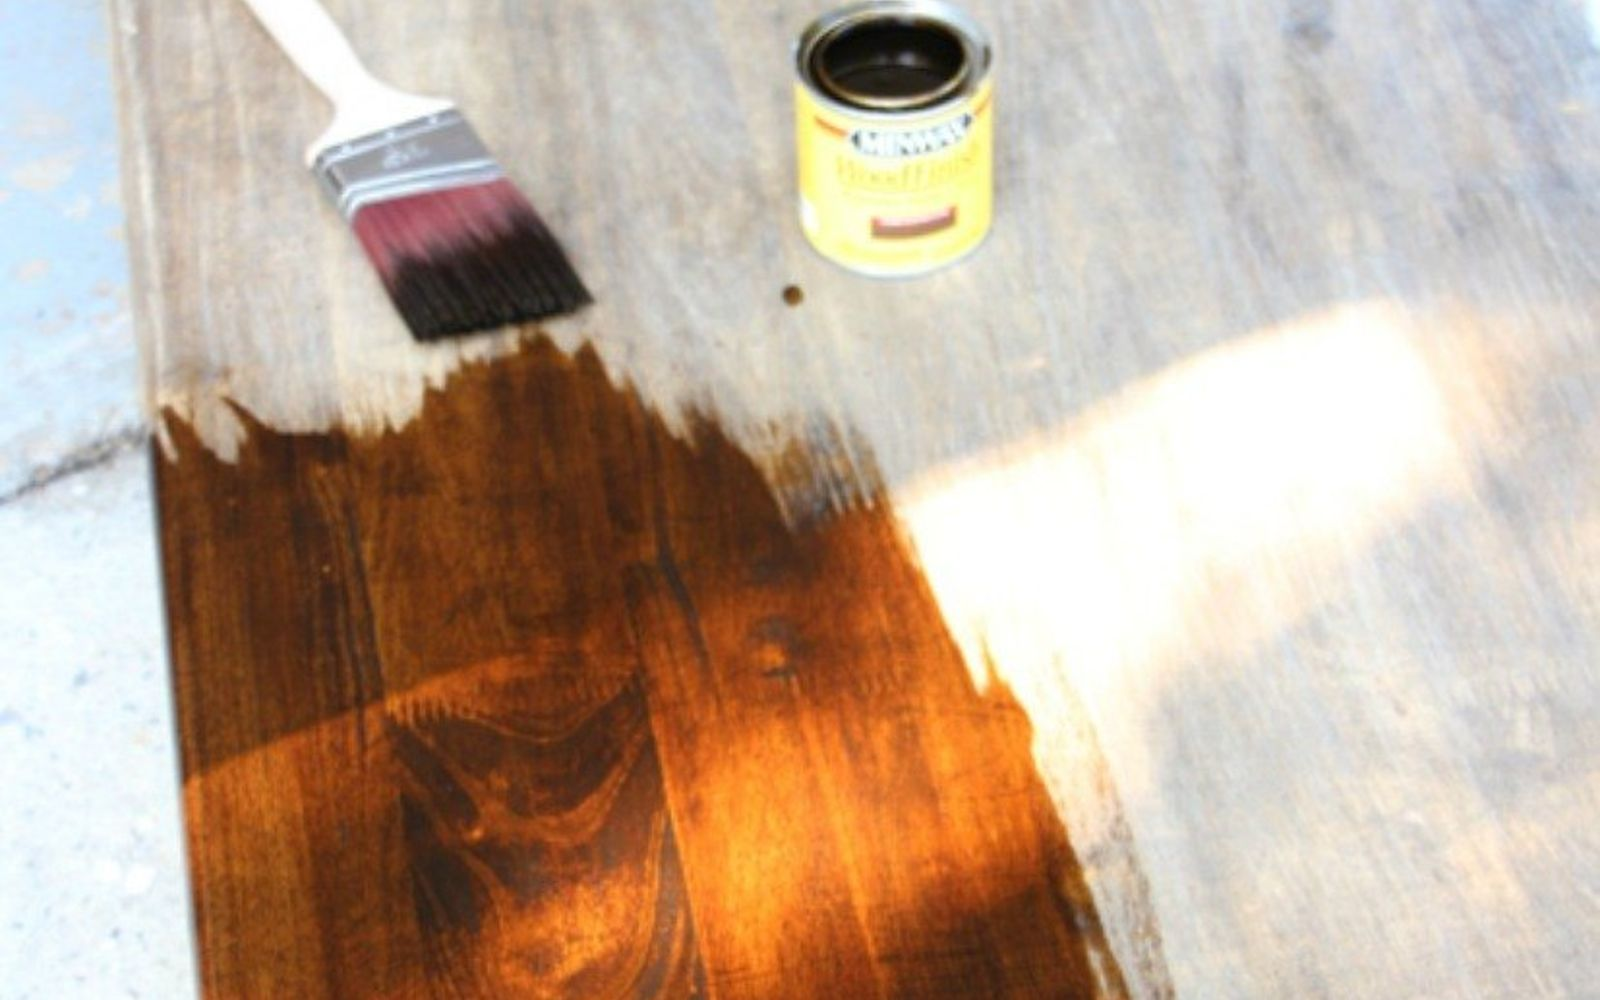 s 9 gorgeous ways to refinish old wood furniture, painted furniture, woodworking projects, Use a bright stain to bring out the grain